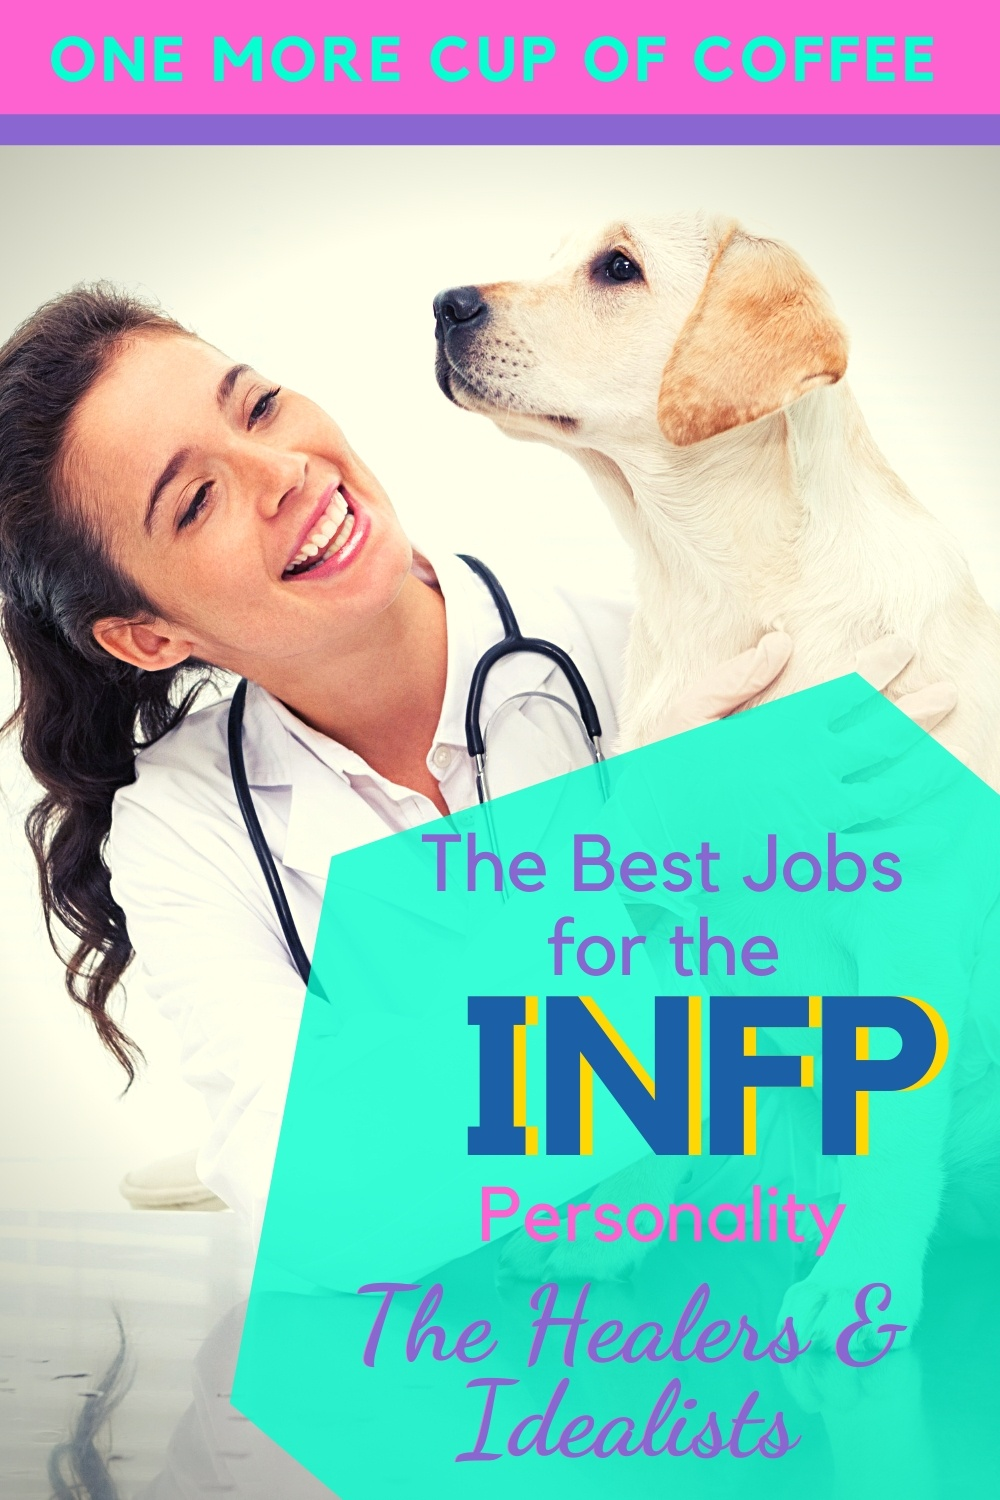 Veterinarian checking out a lab puppy representing best jobs for INFP personalities.